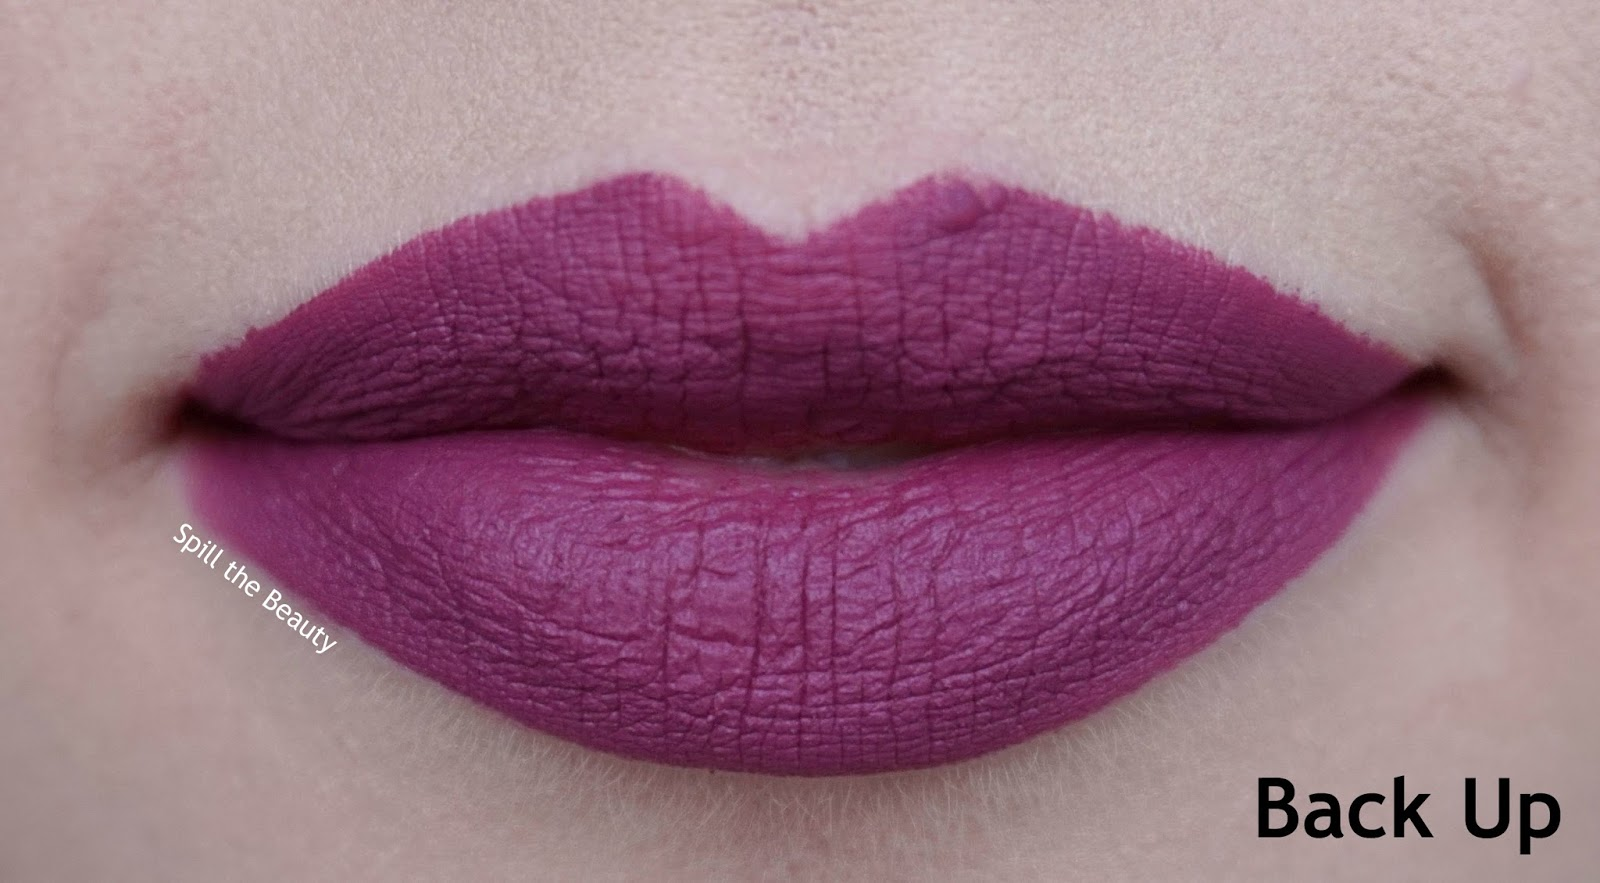 colourpop lippie stix review swatches 3 back up - lips